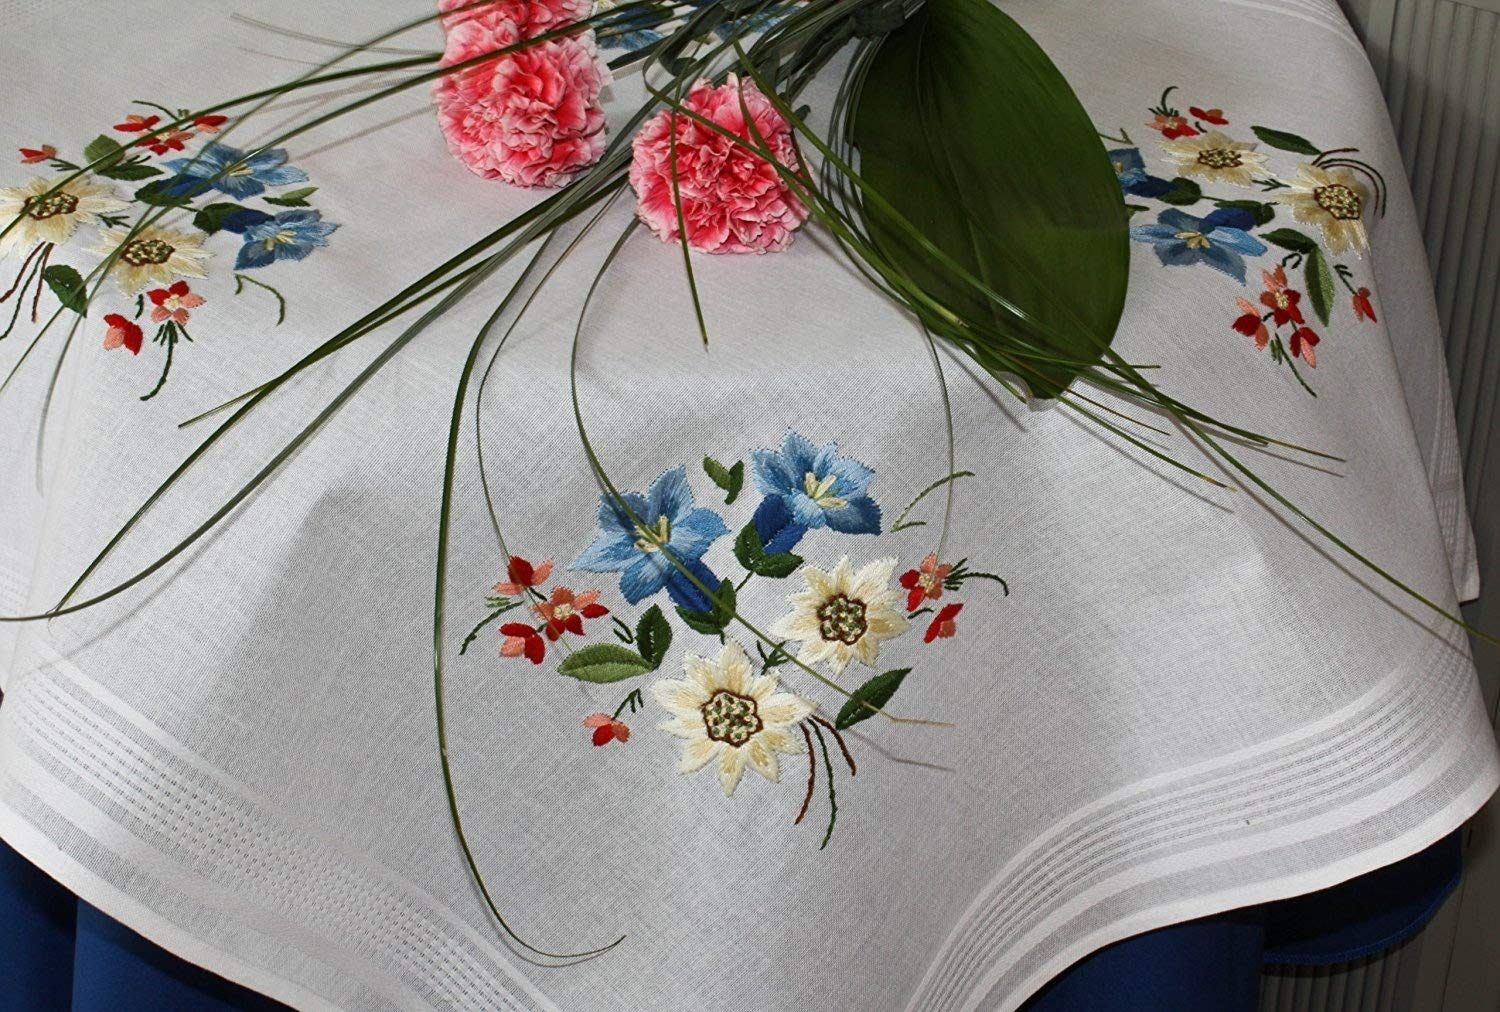 Kamaca-Shop Embroidery Kit in 'Alpine Flowers' Design with Gentian, Edelweiss and Alpine Rose Flowers Including Centrepiece Tablecloth for Self-Embroidery 80 cm x 80 cm Pre-Outlined Satin Stitch, Stem Stitch and Knot Stitch 100% Cotton Ready to Start Imme